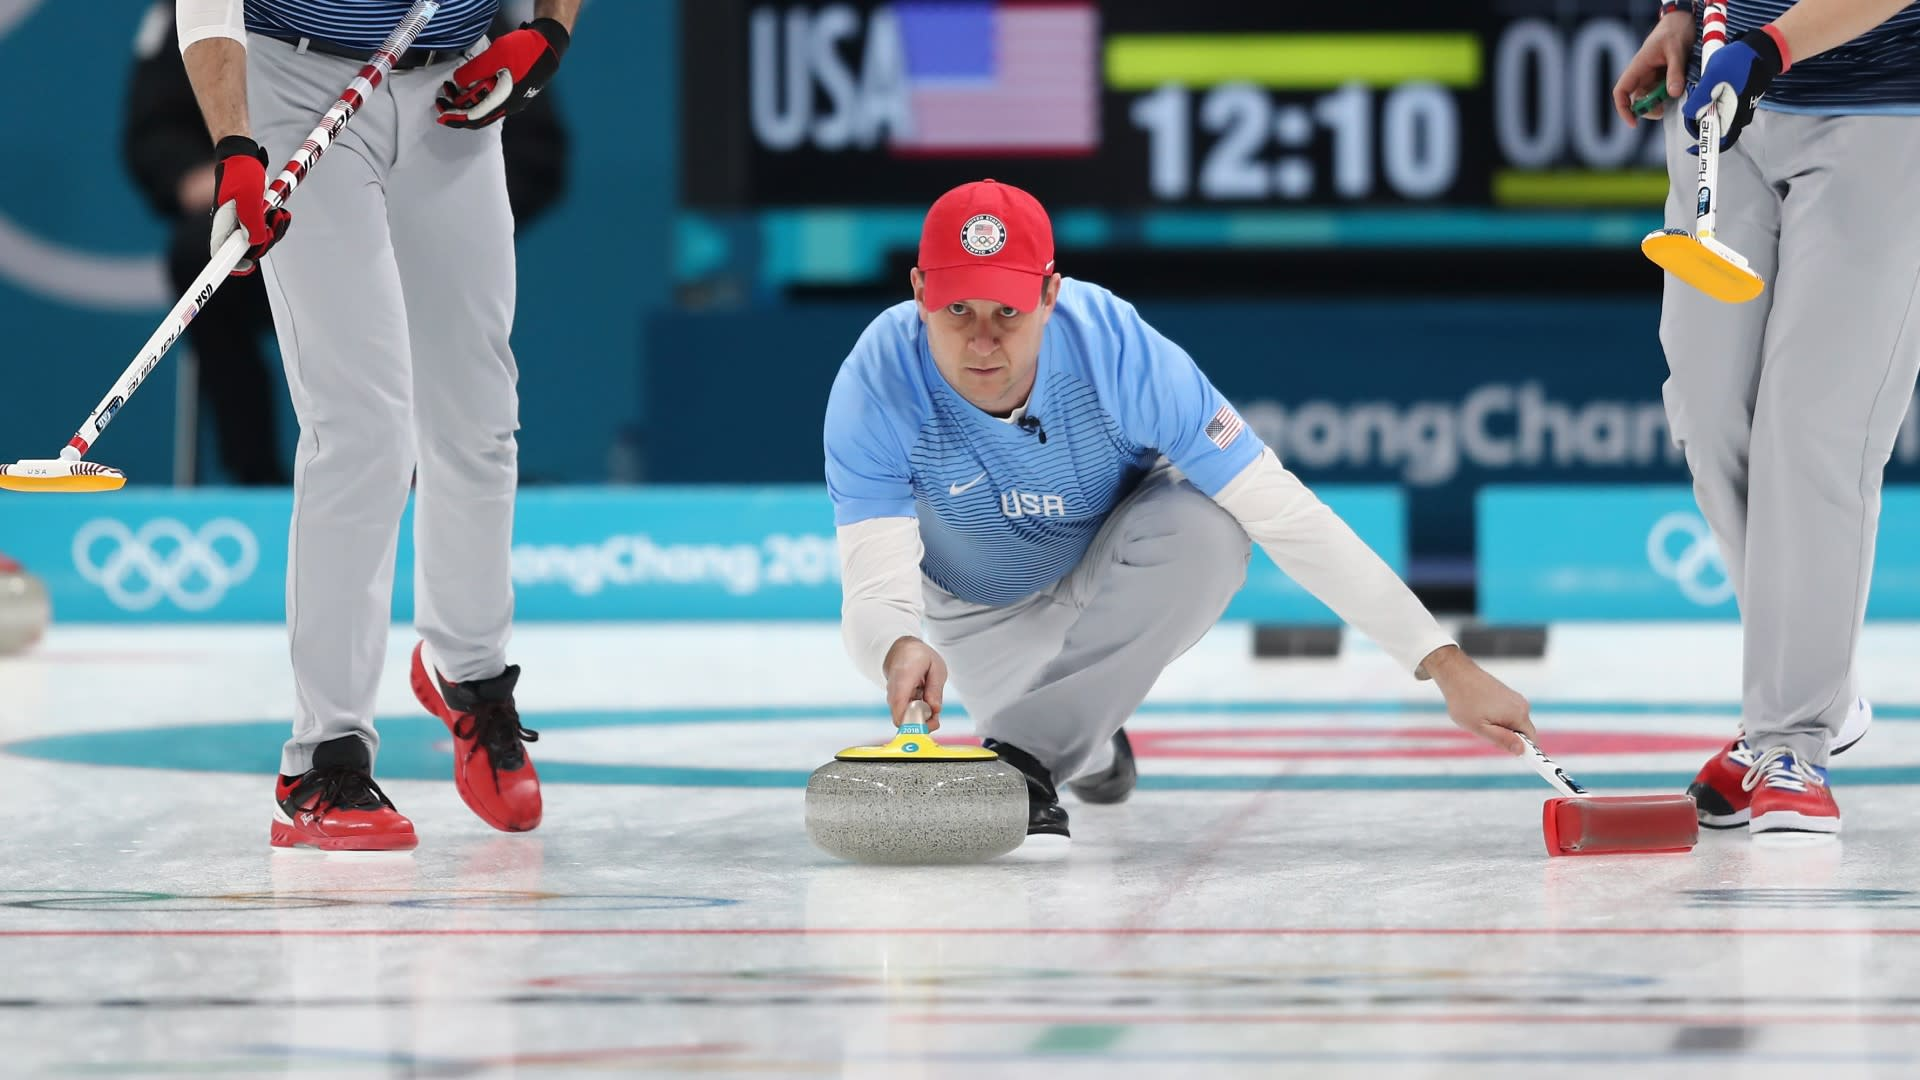 World Men's Curling Championship 2019 preview: Shuster and